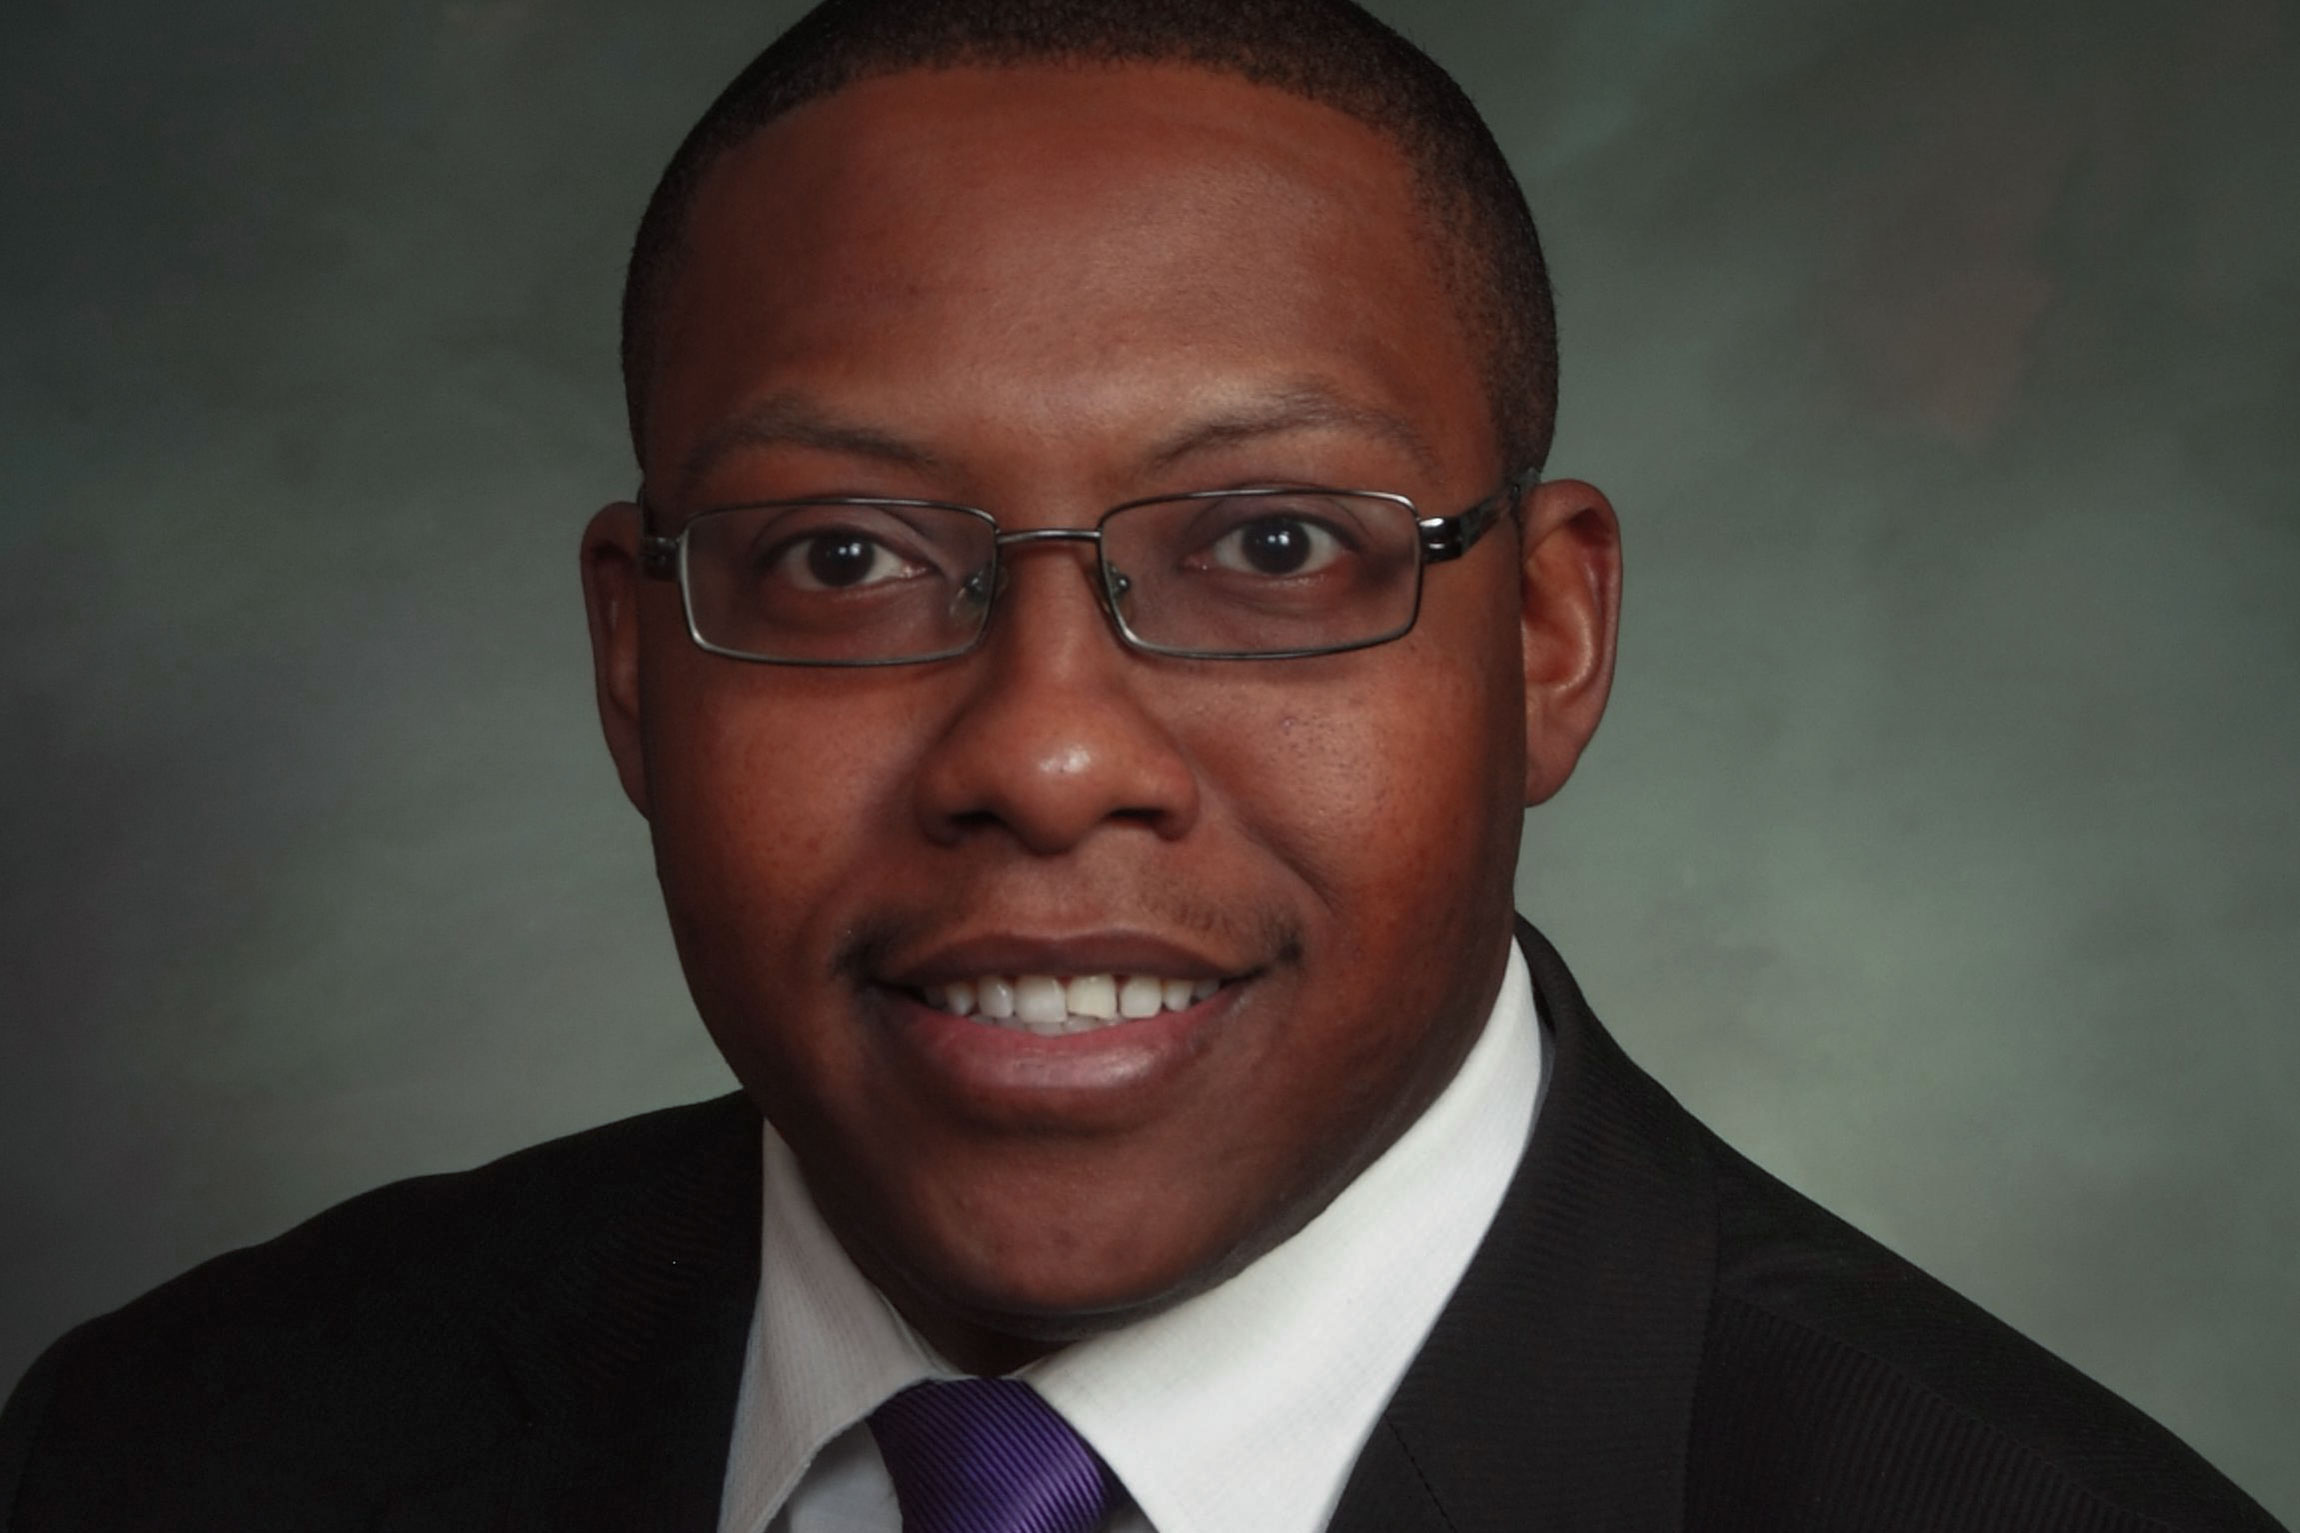 Photo: State Rep. Jovan Melton - Courtesy